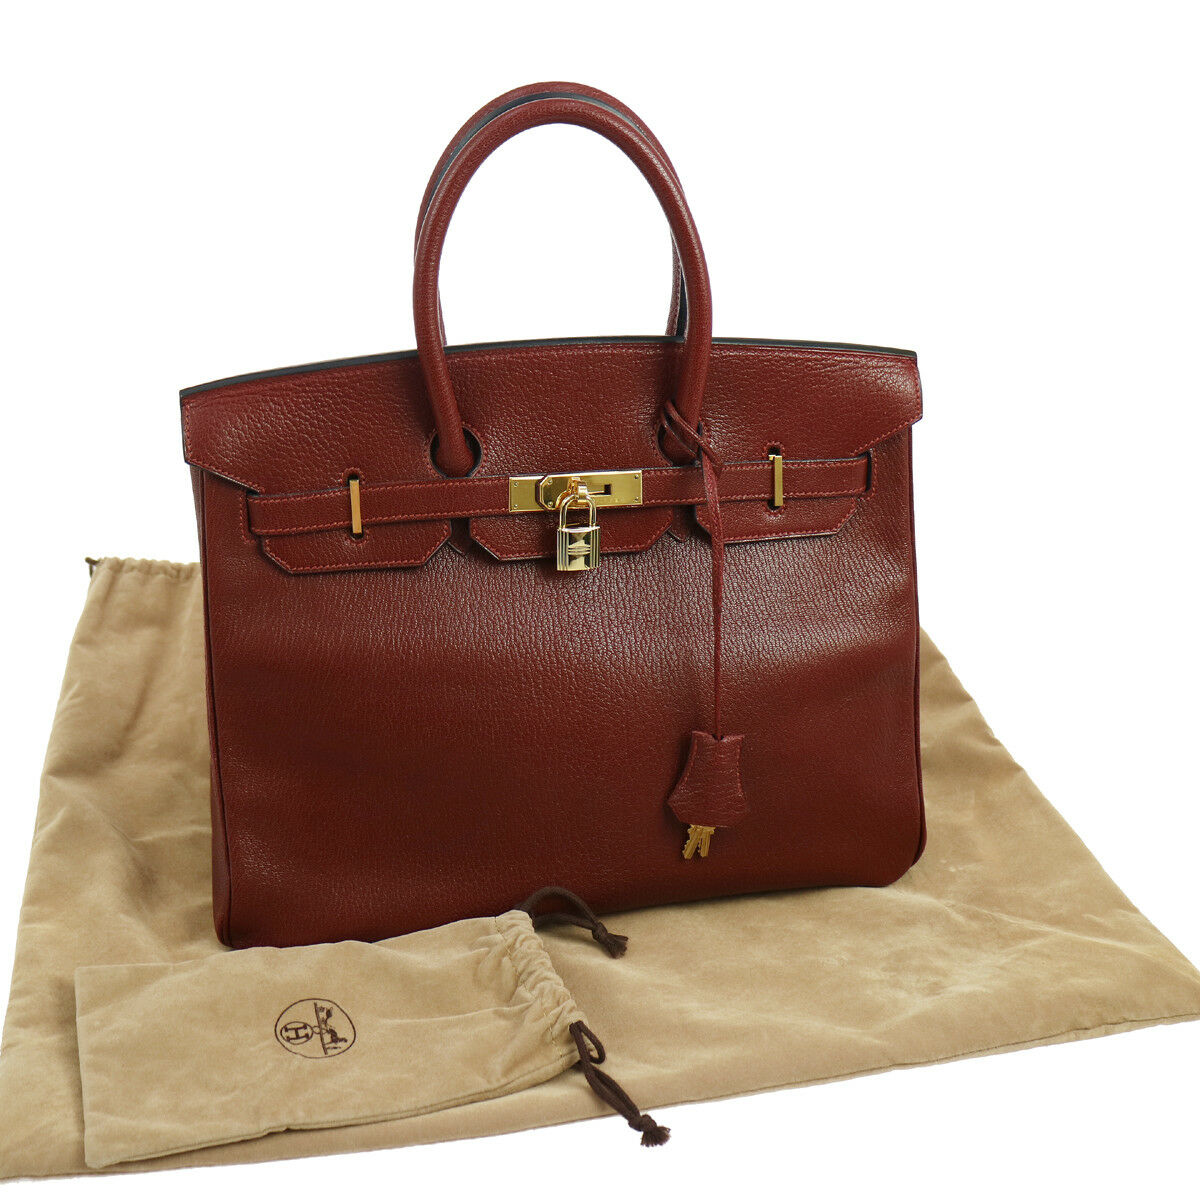 Authentic HERMES BIRKIN 35 Hand Bag Burgundy Chevre Myzore Vintage GHW RK13198